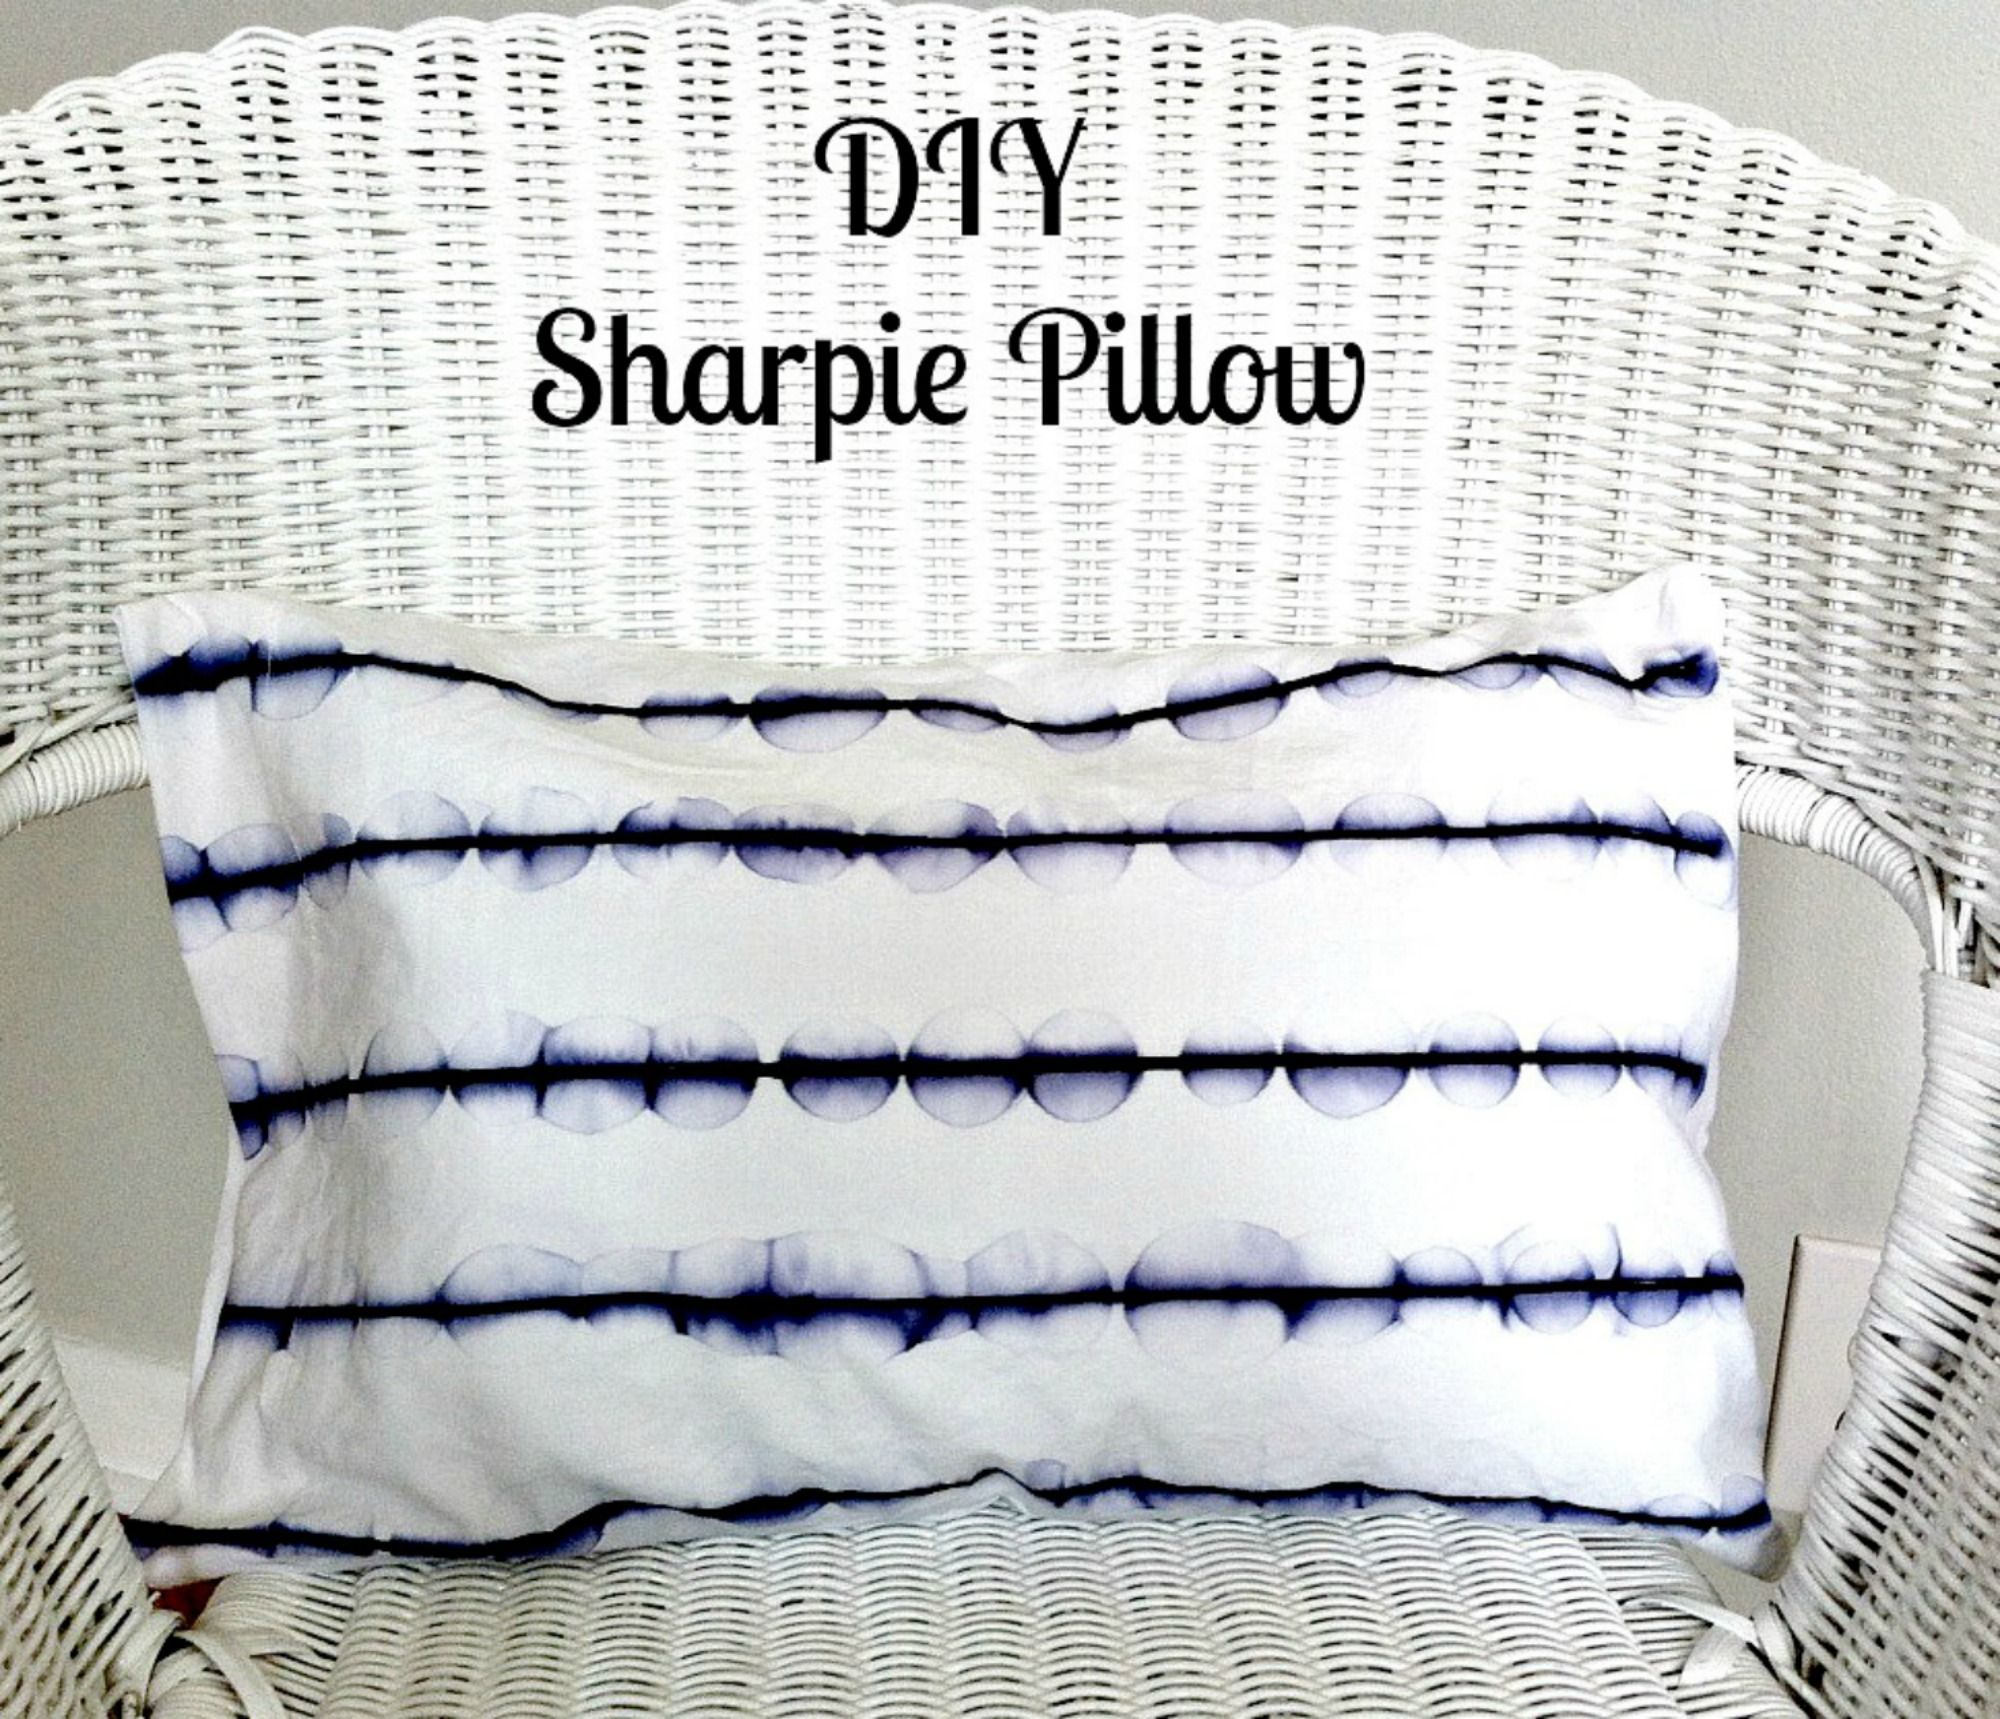 Craft ideas with sharpies - Diy Sharpie Pillow Draw Parallel Lines Then Use Medicine Dropper To Drip Rubbing Alcohol